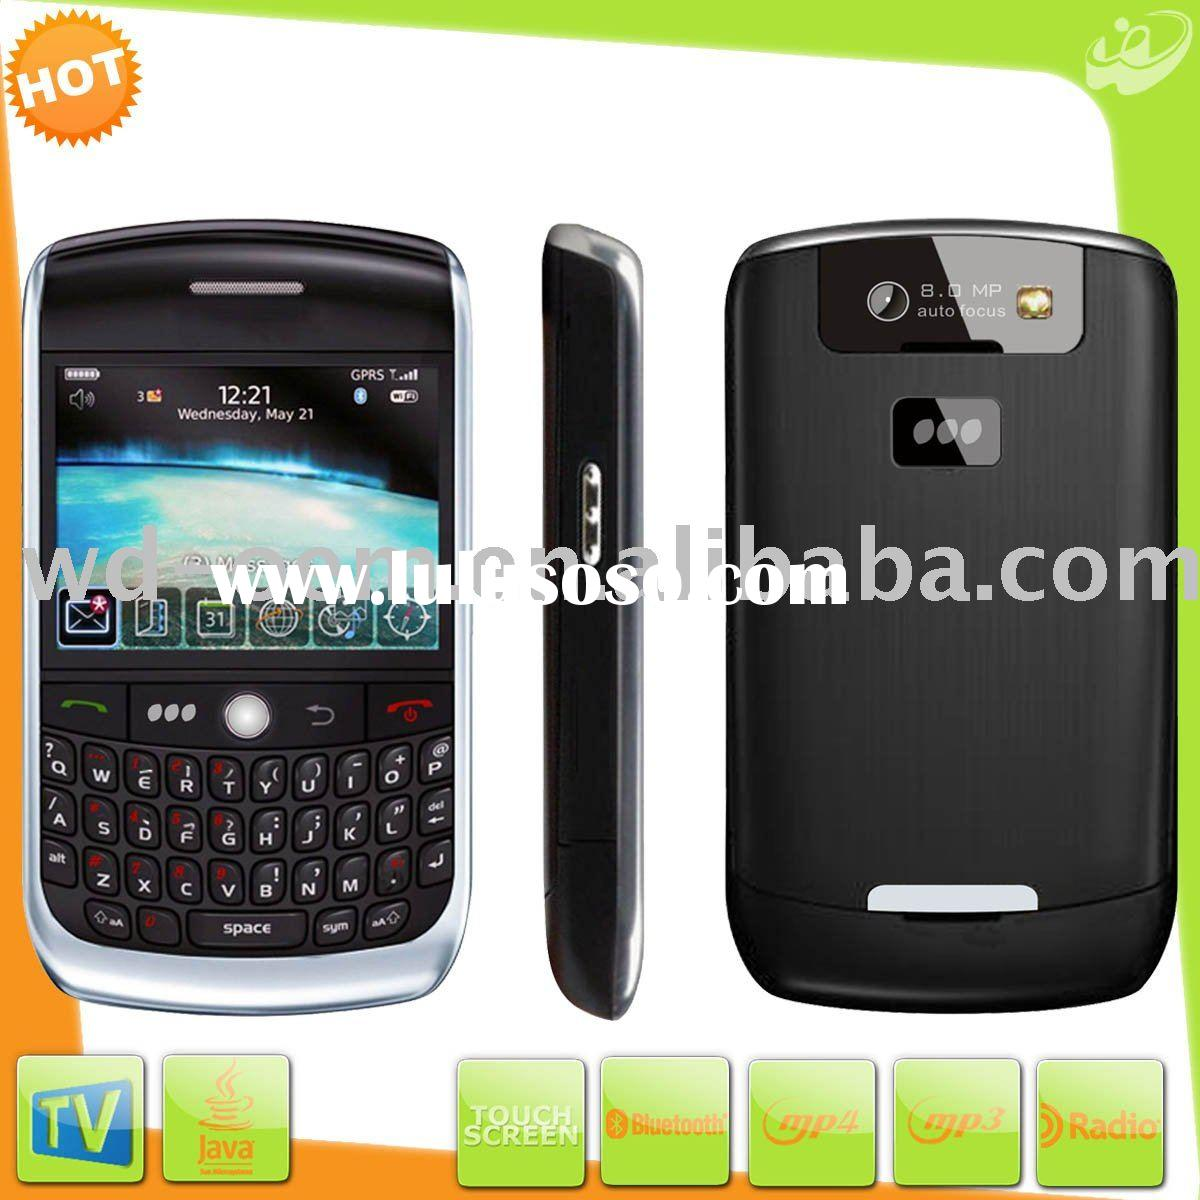 Hot dual sim dual standby mobile phone blueberry 8900